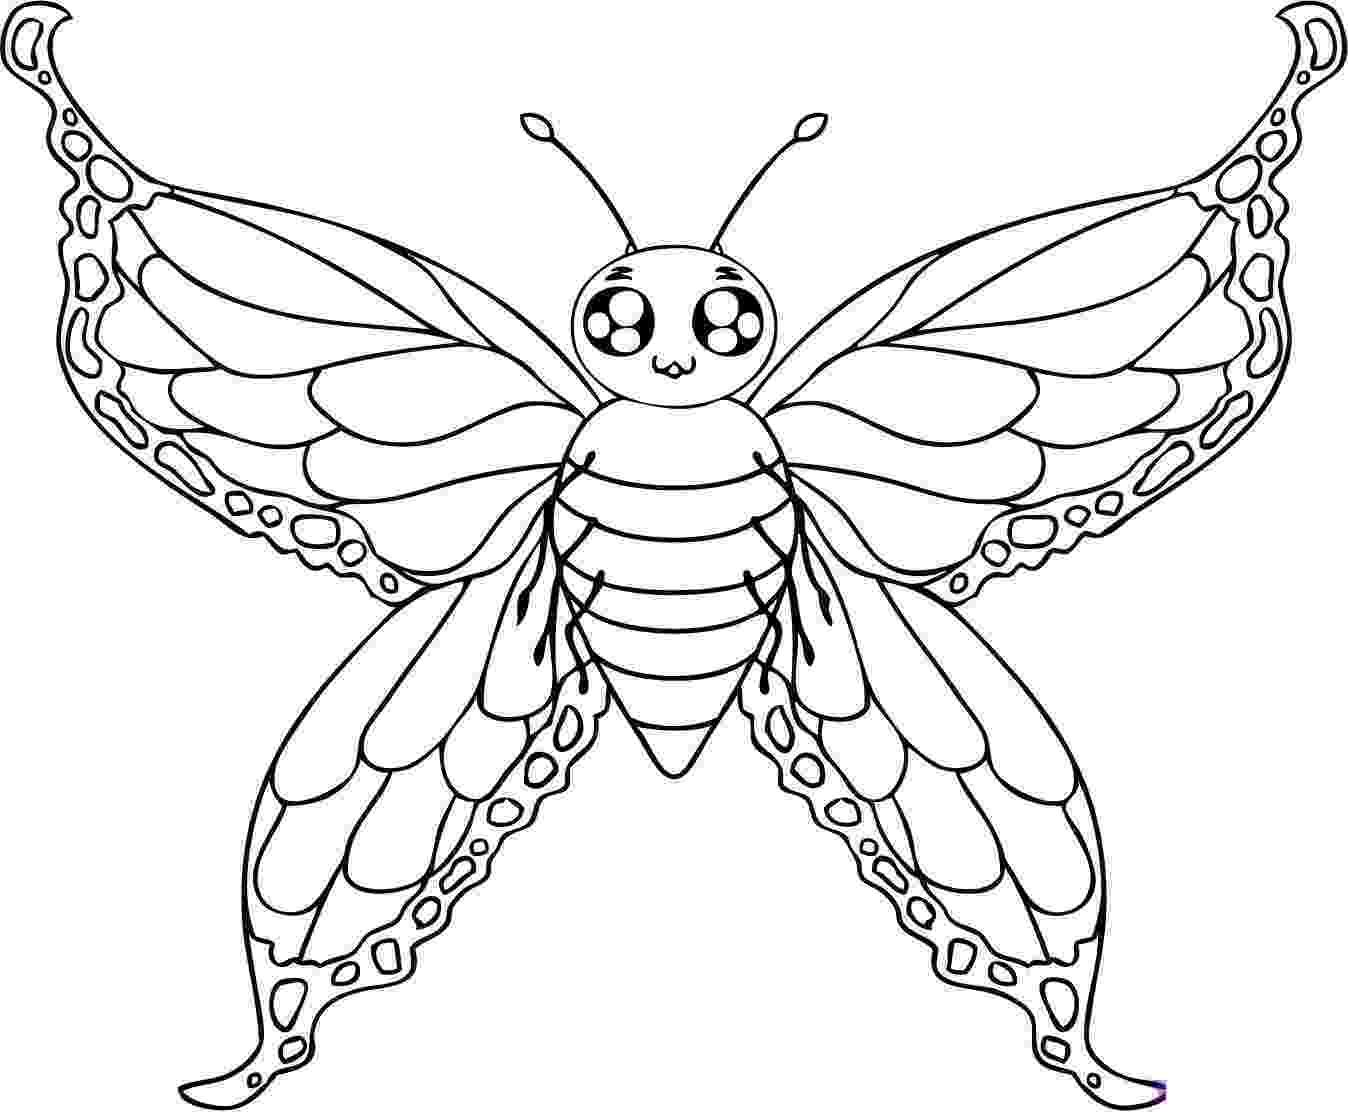 cartoon butterfly pictures to color baby butterfly butterfly coloring page coloring pages pictures butterfly to cartoon color